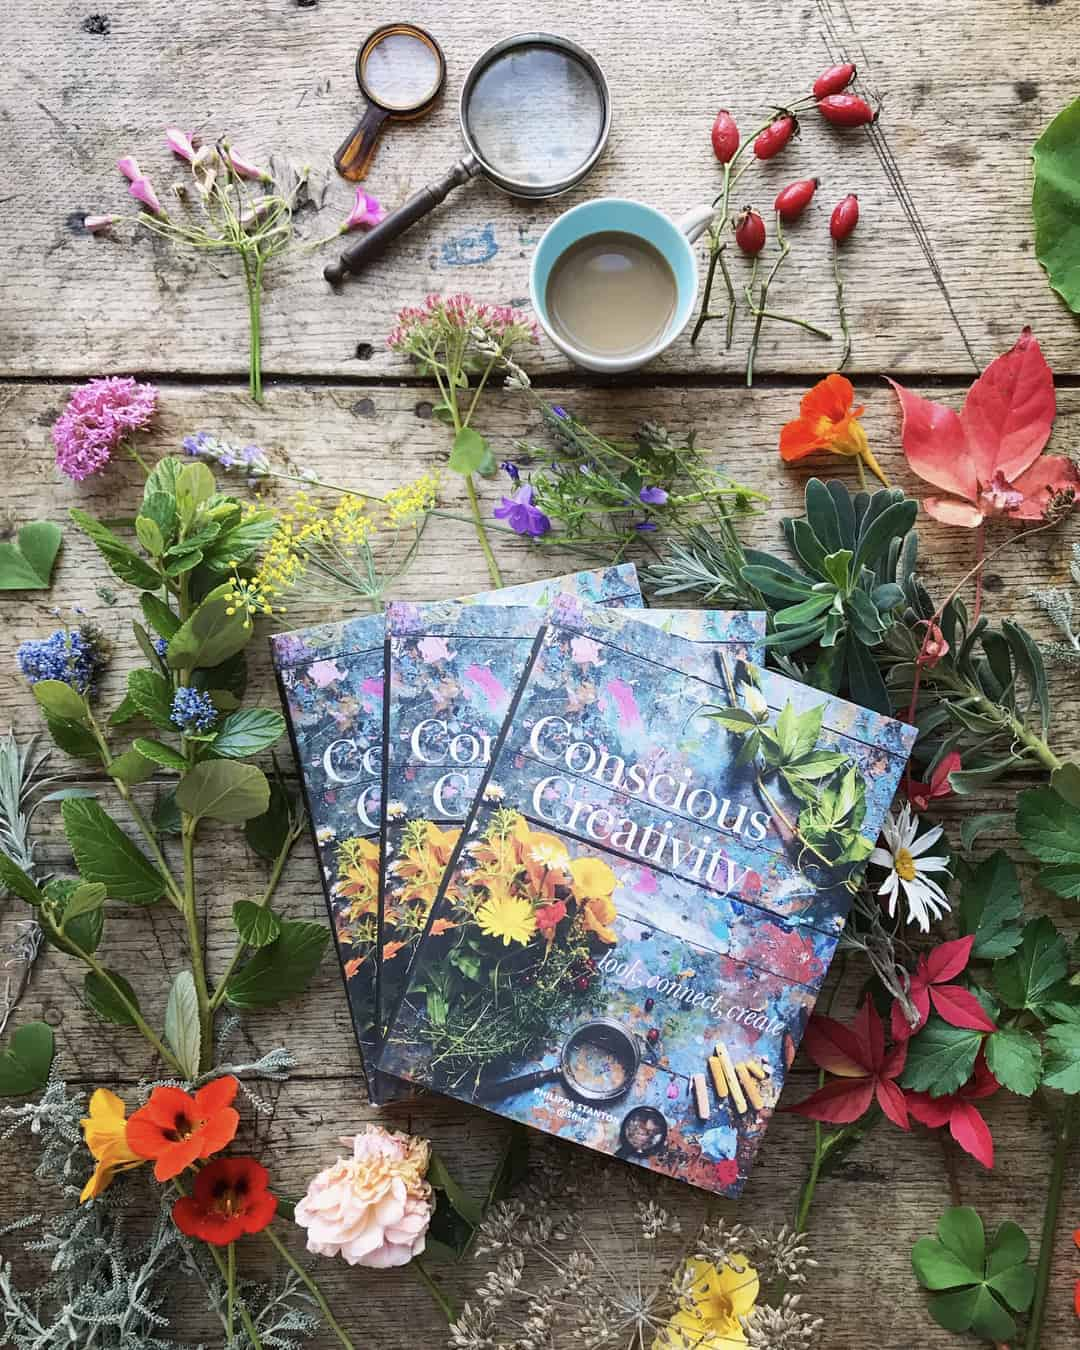 love this conscious creativity book by philippa stanton @5ftinf click through to find out more and see lots of inspiring creative images and ideas from this wonderful book